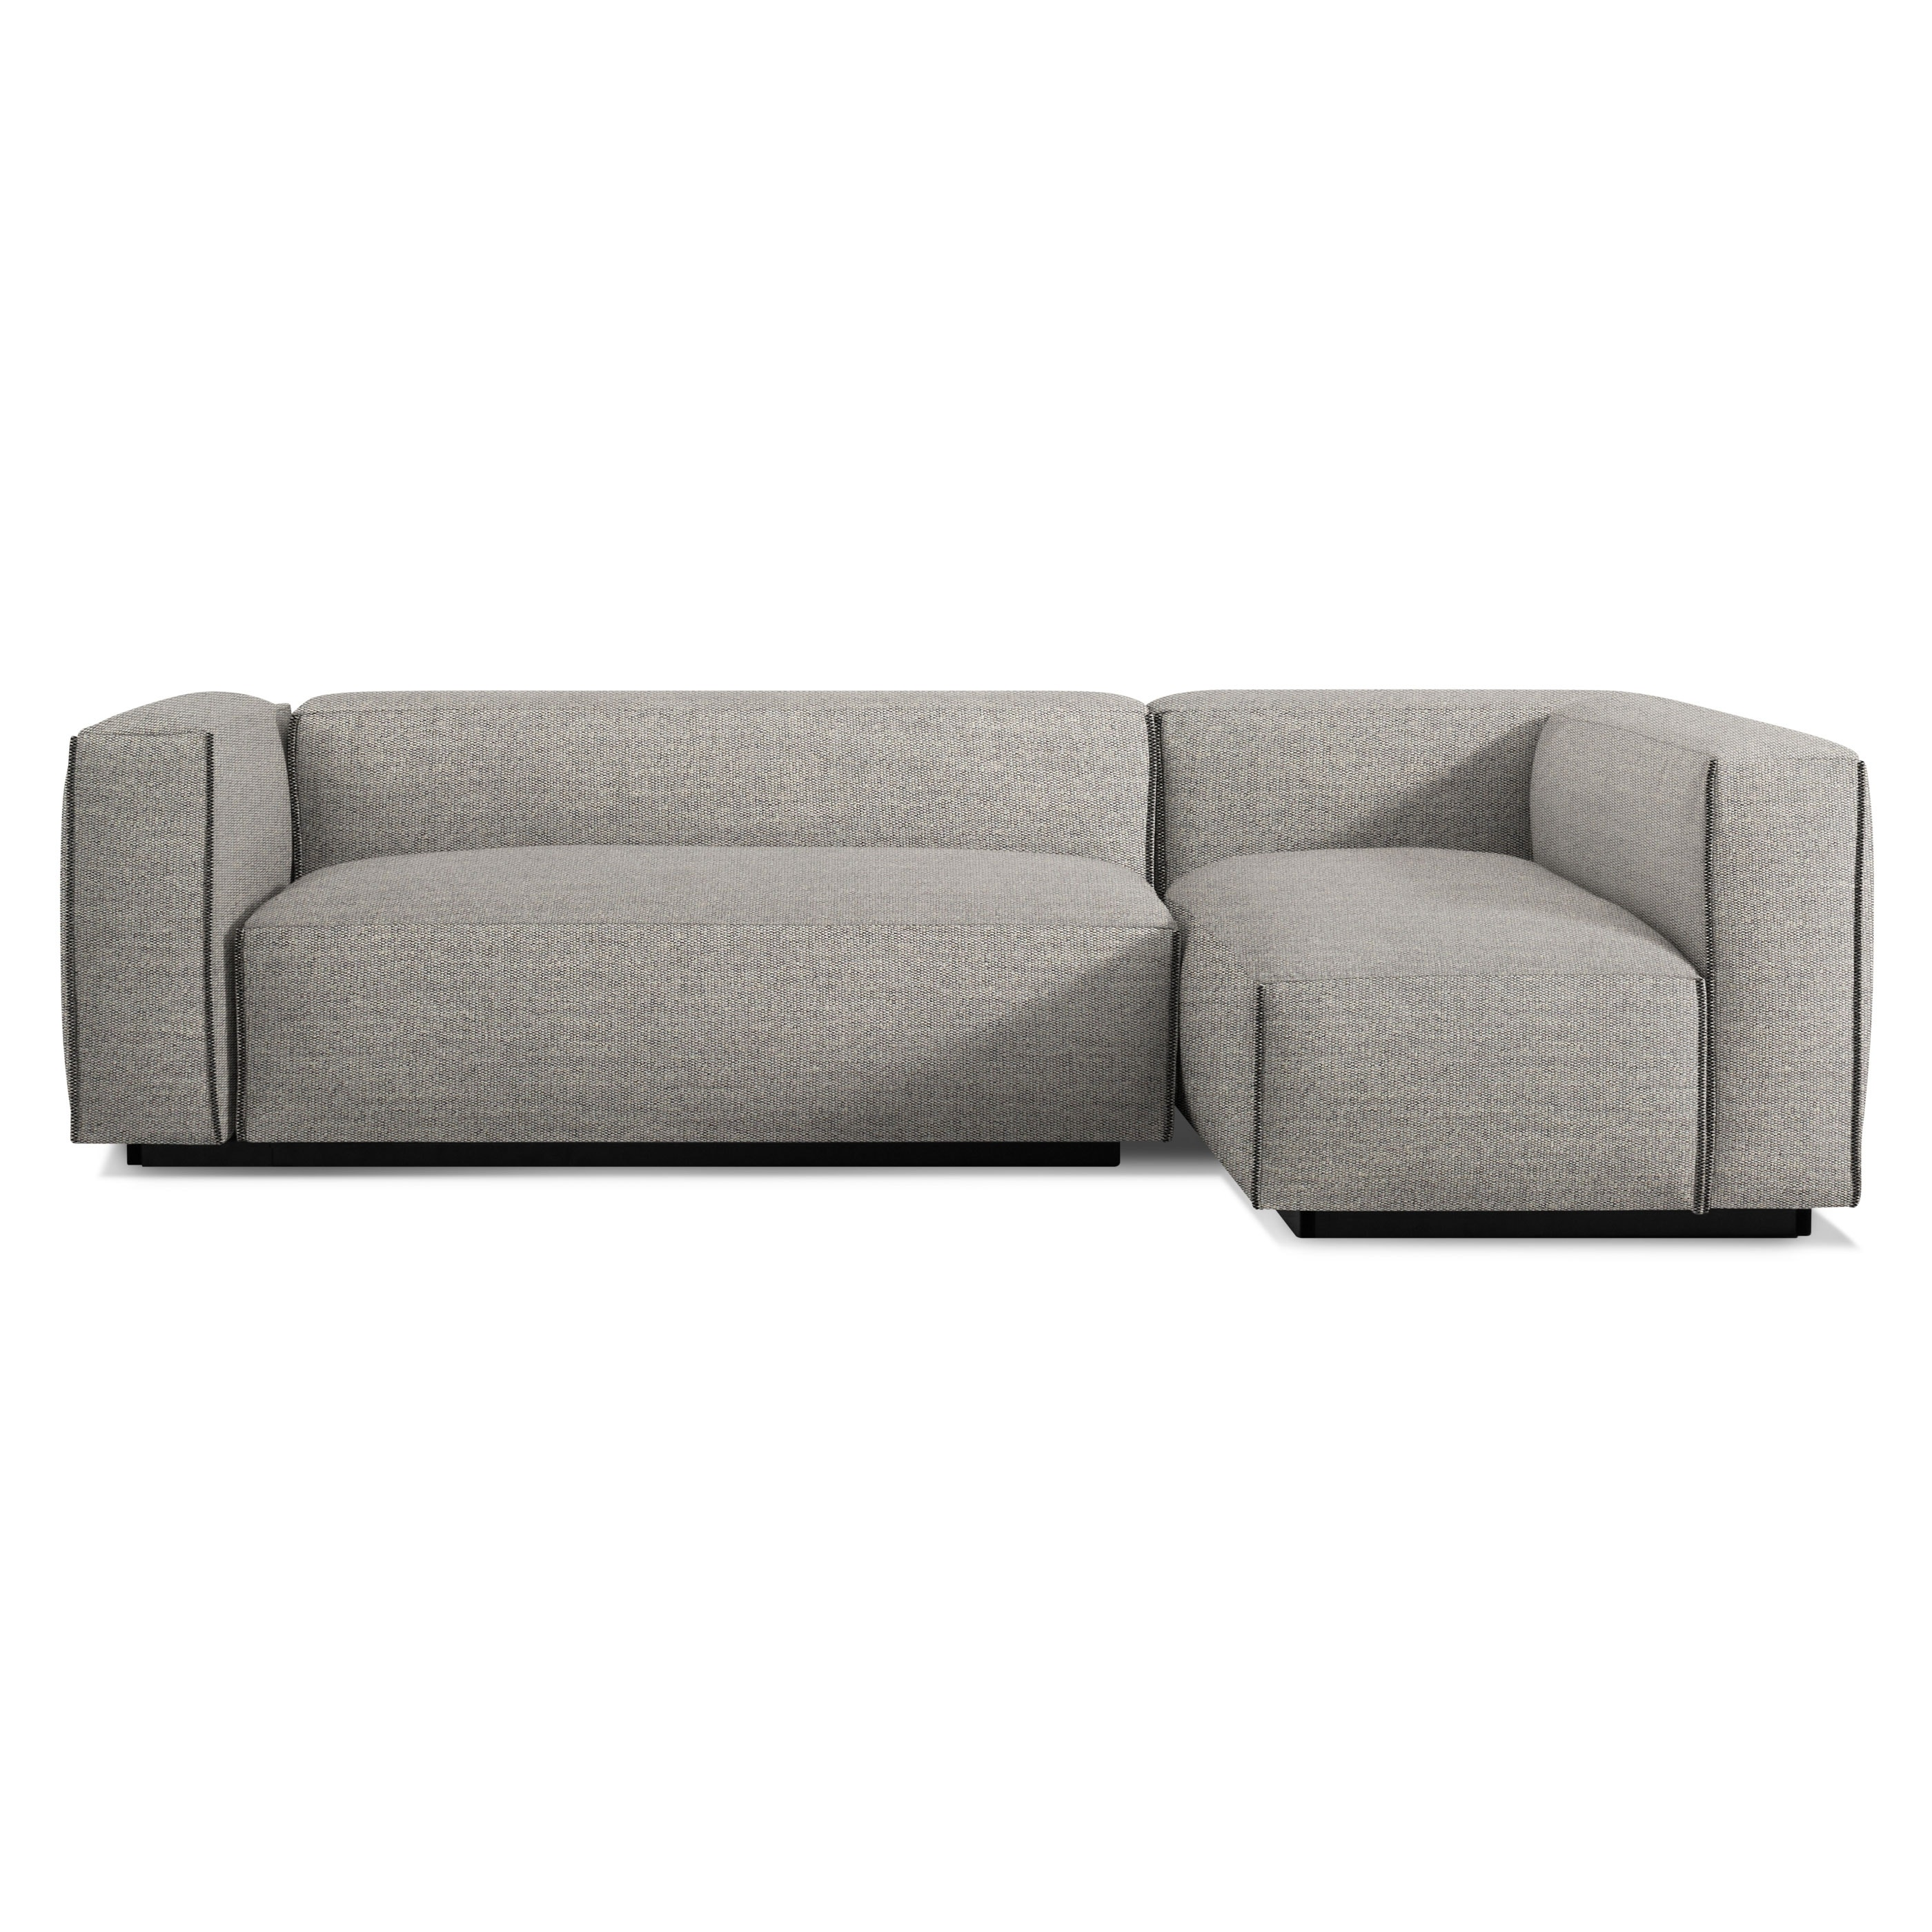 Previous Image Cleon Small Sectional Sofa   Tait Charcoal ...